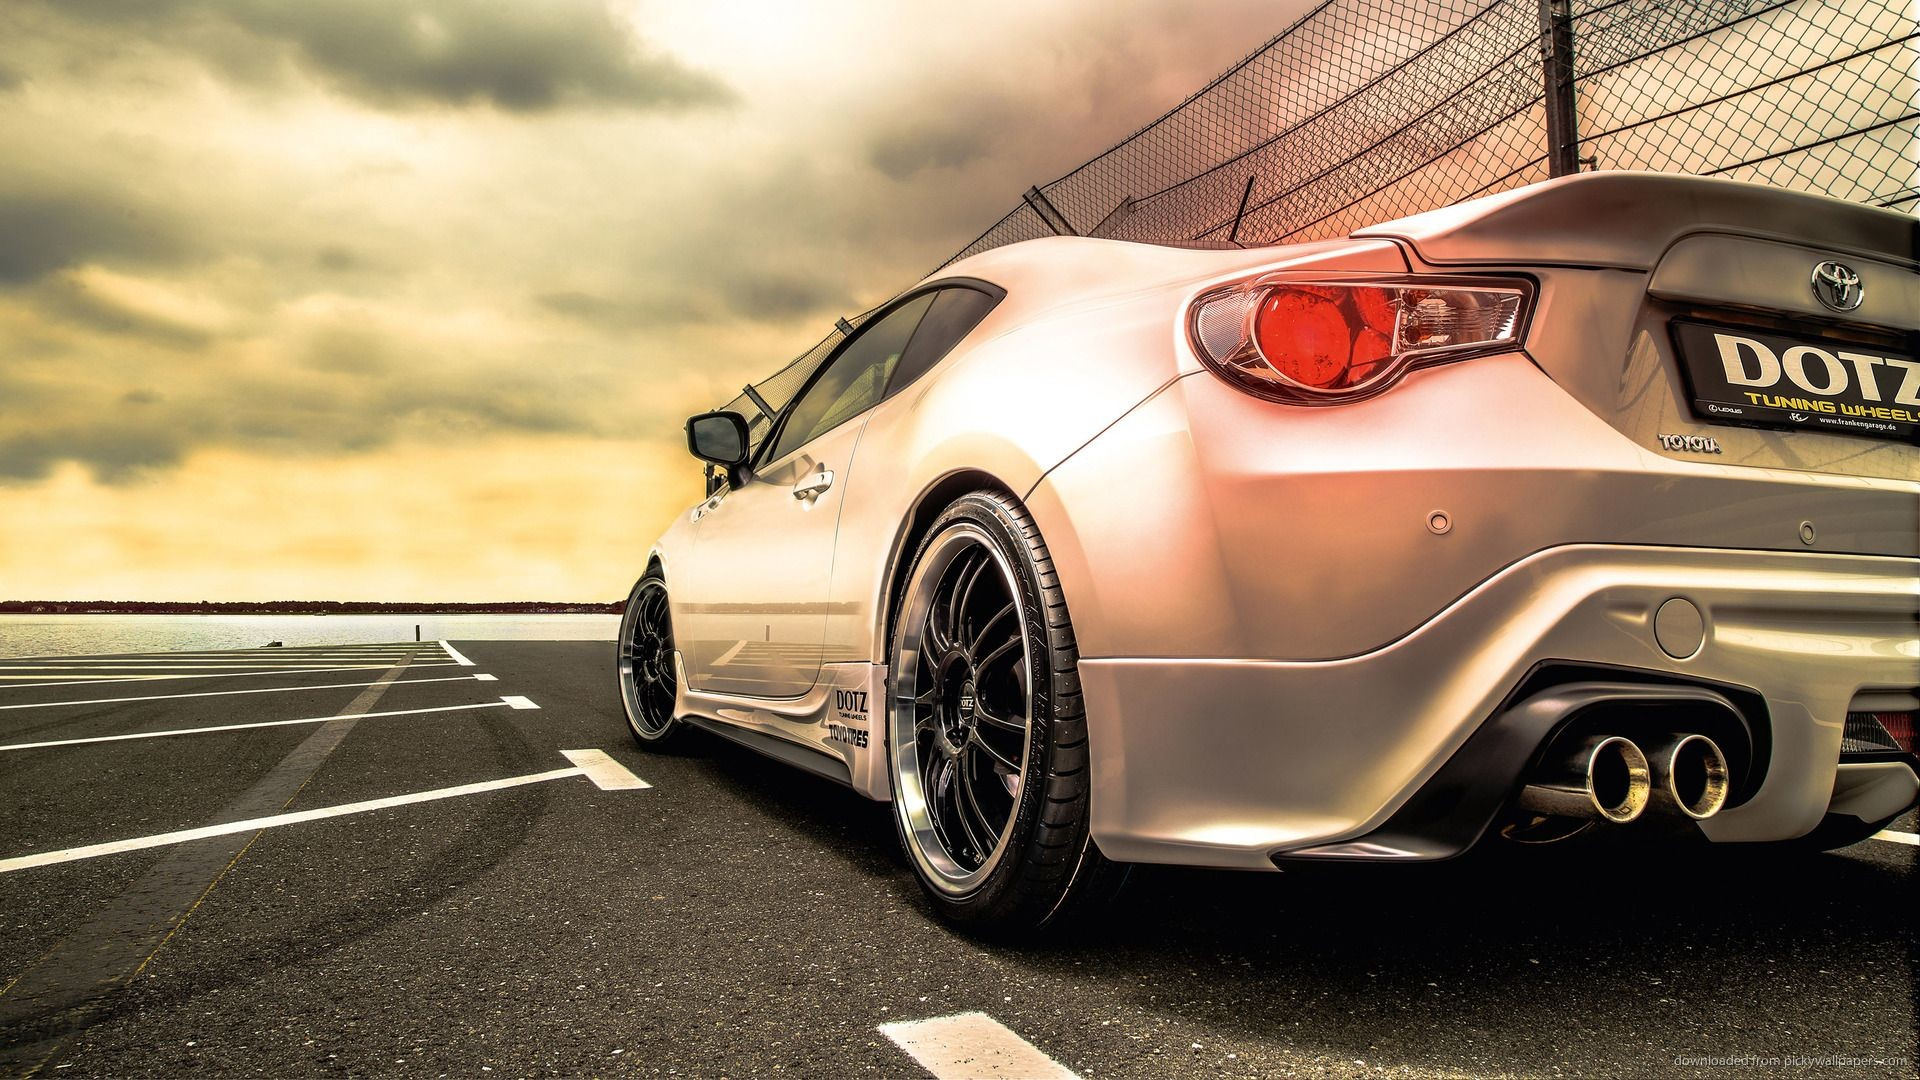 Rocket Bunny wallpaper Unsorted Other Wallpaper Collection